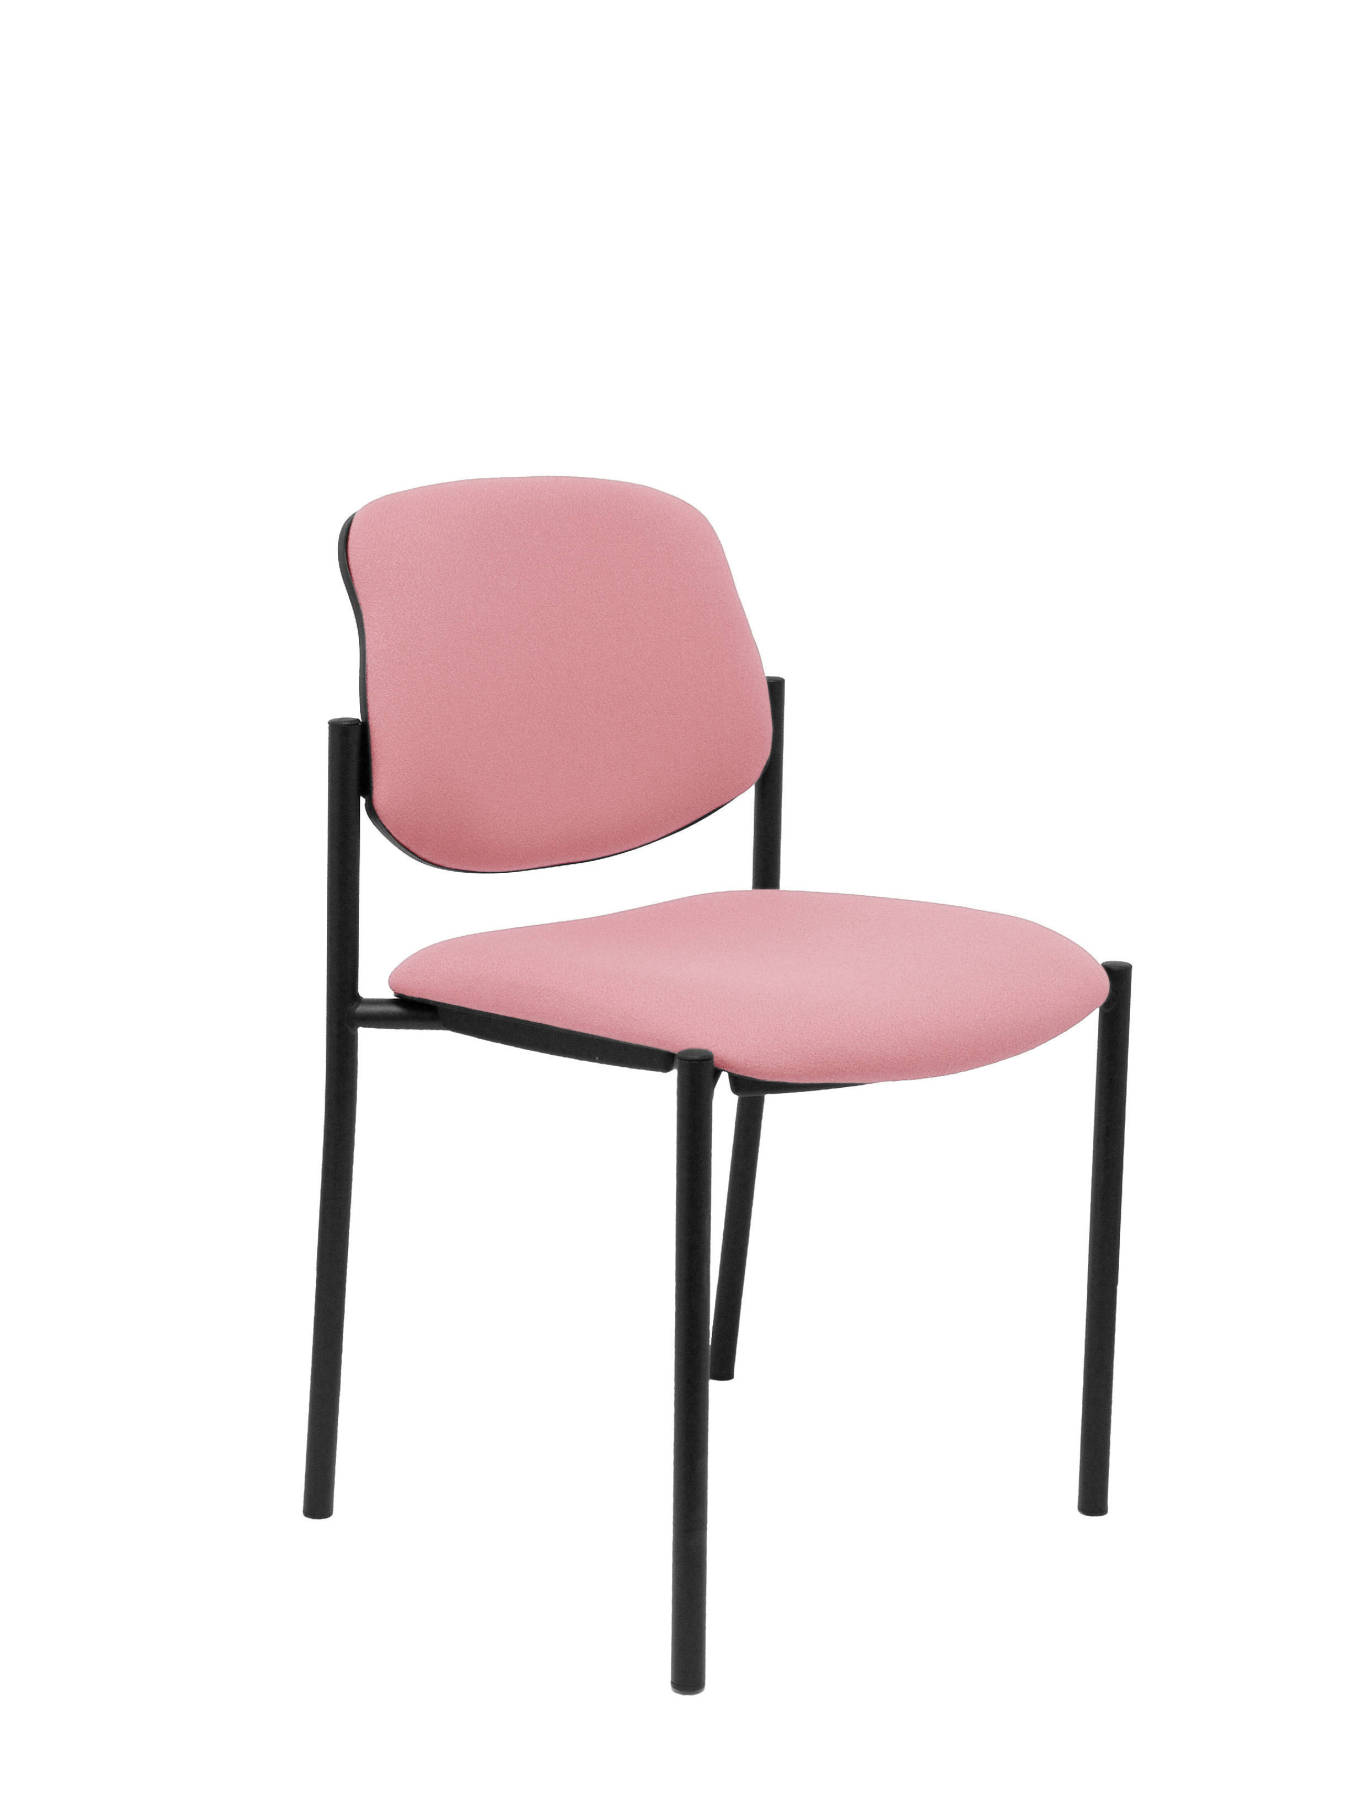 Visitor Chair 4's Topsy And Estructrua Negro-up Seat And Backstop Upholstered In BALI Tissue Pink Colour TAPHOLE AND CRESP